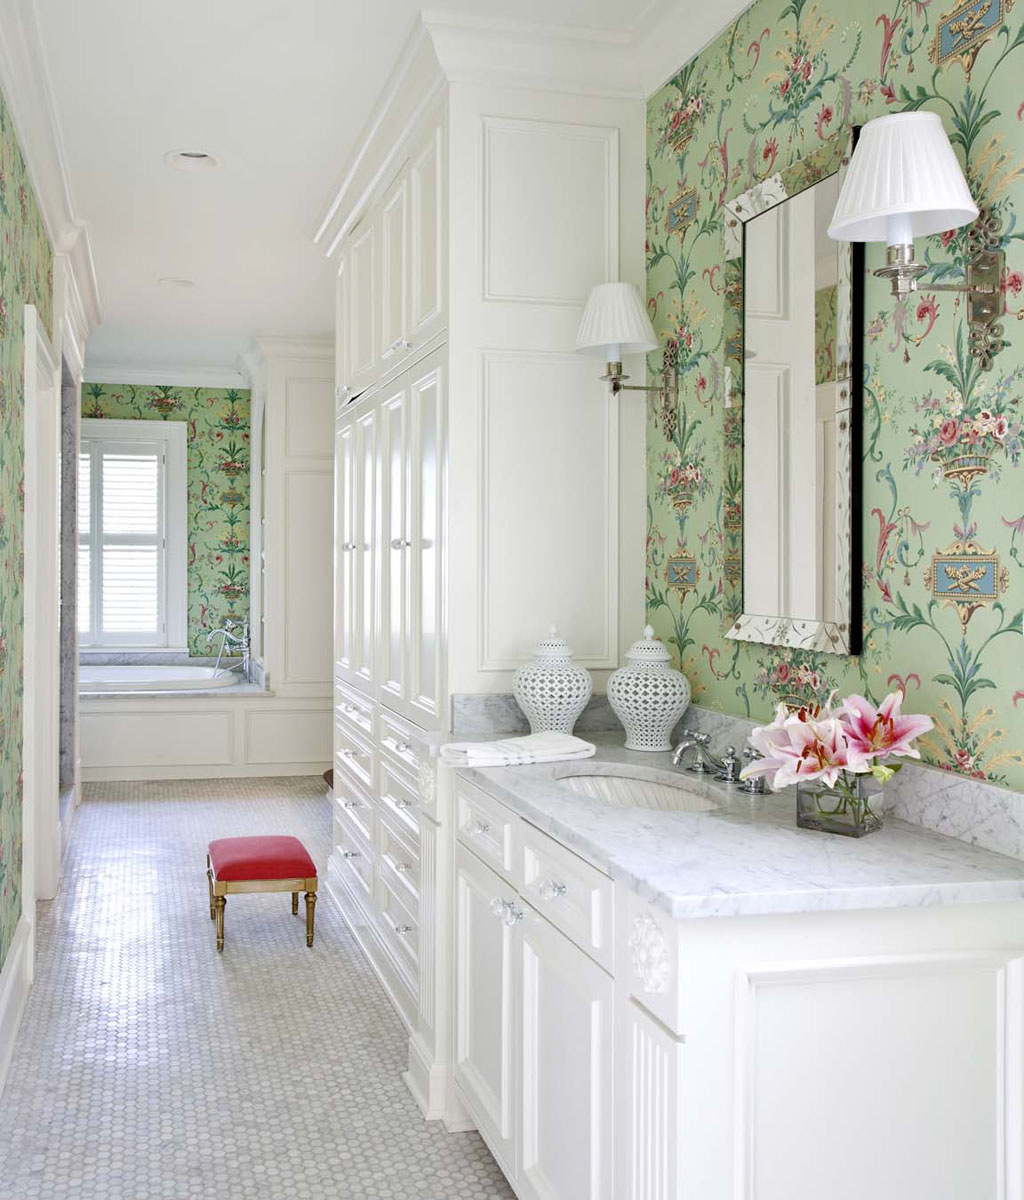 Cheerful Summer Interiors 50 Green And Yellow Kitchen: Girl's Room With Splashes Of Pink